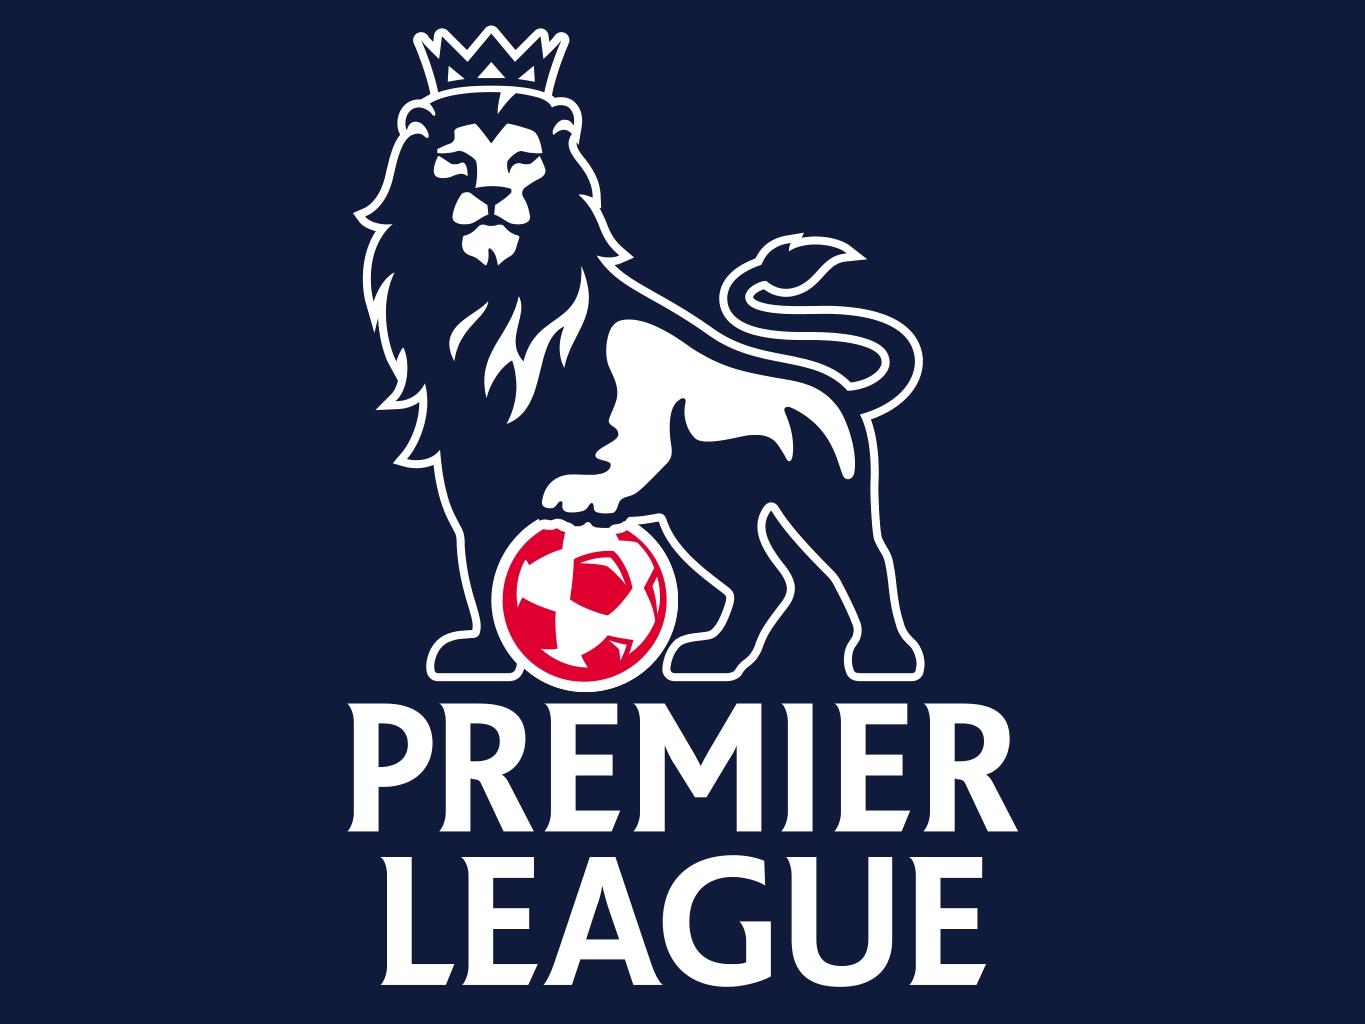 England - Premier League